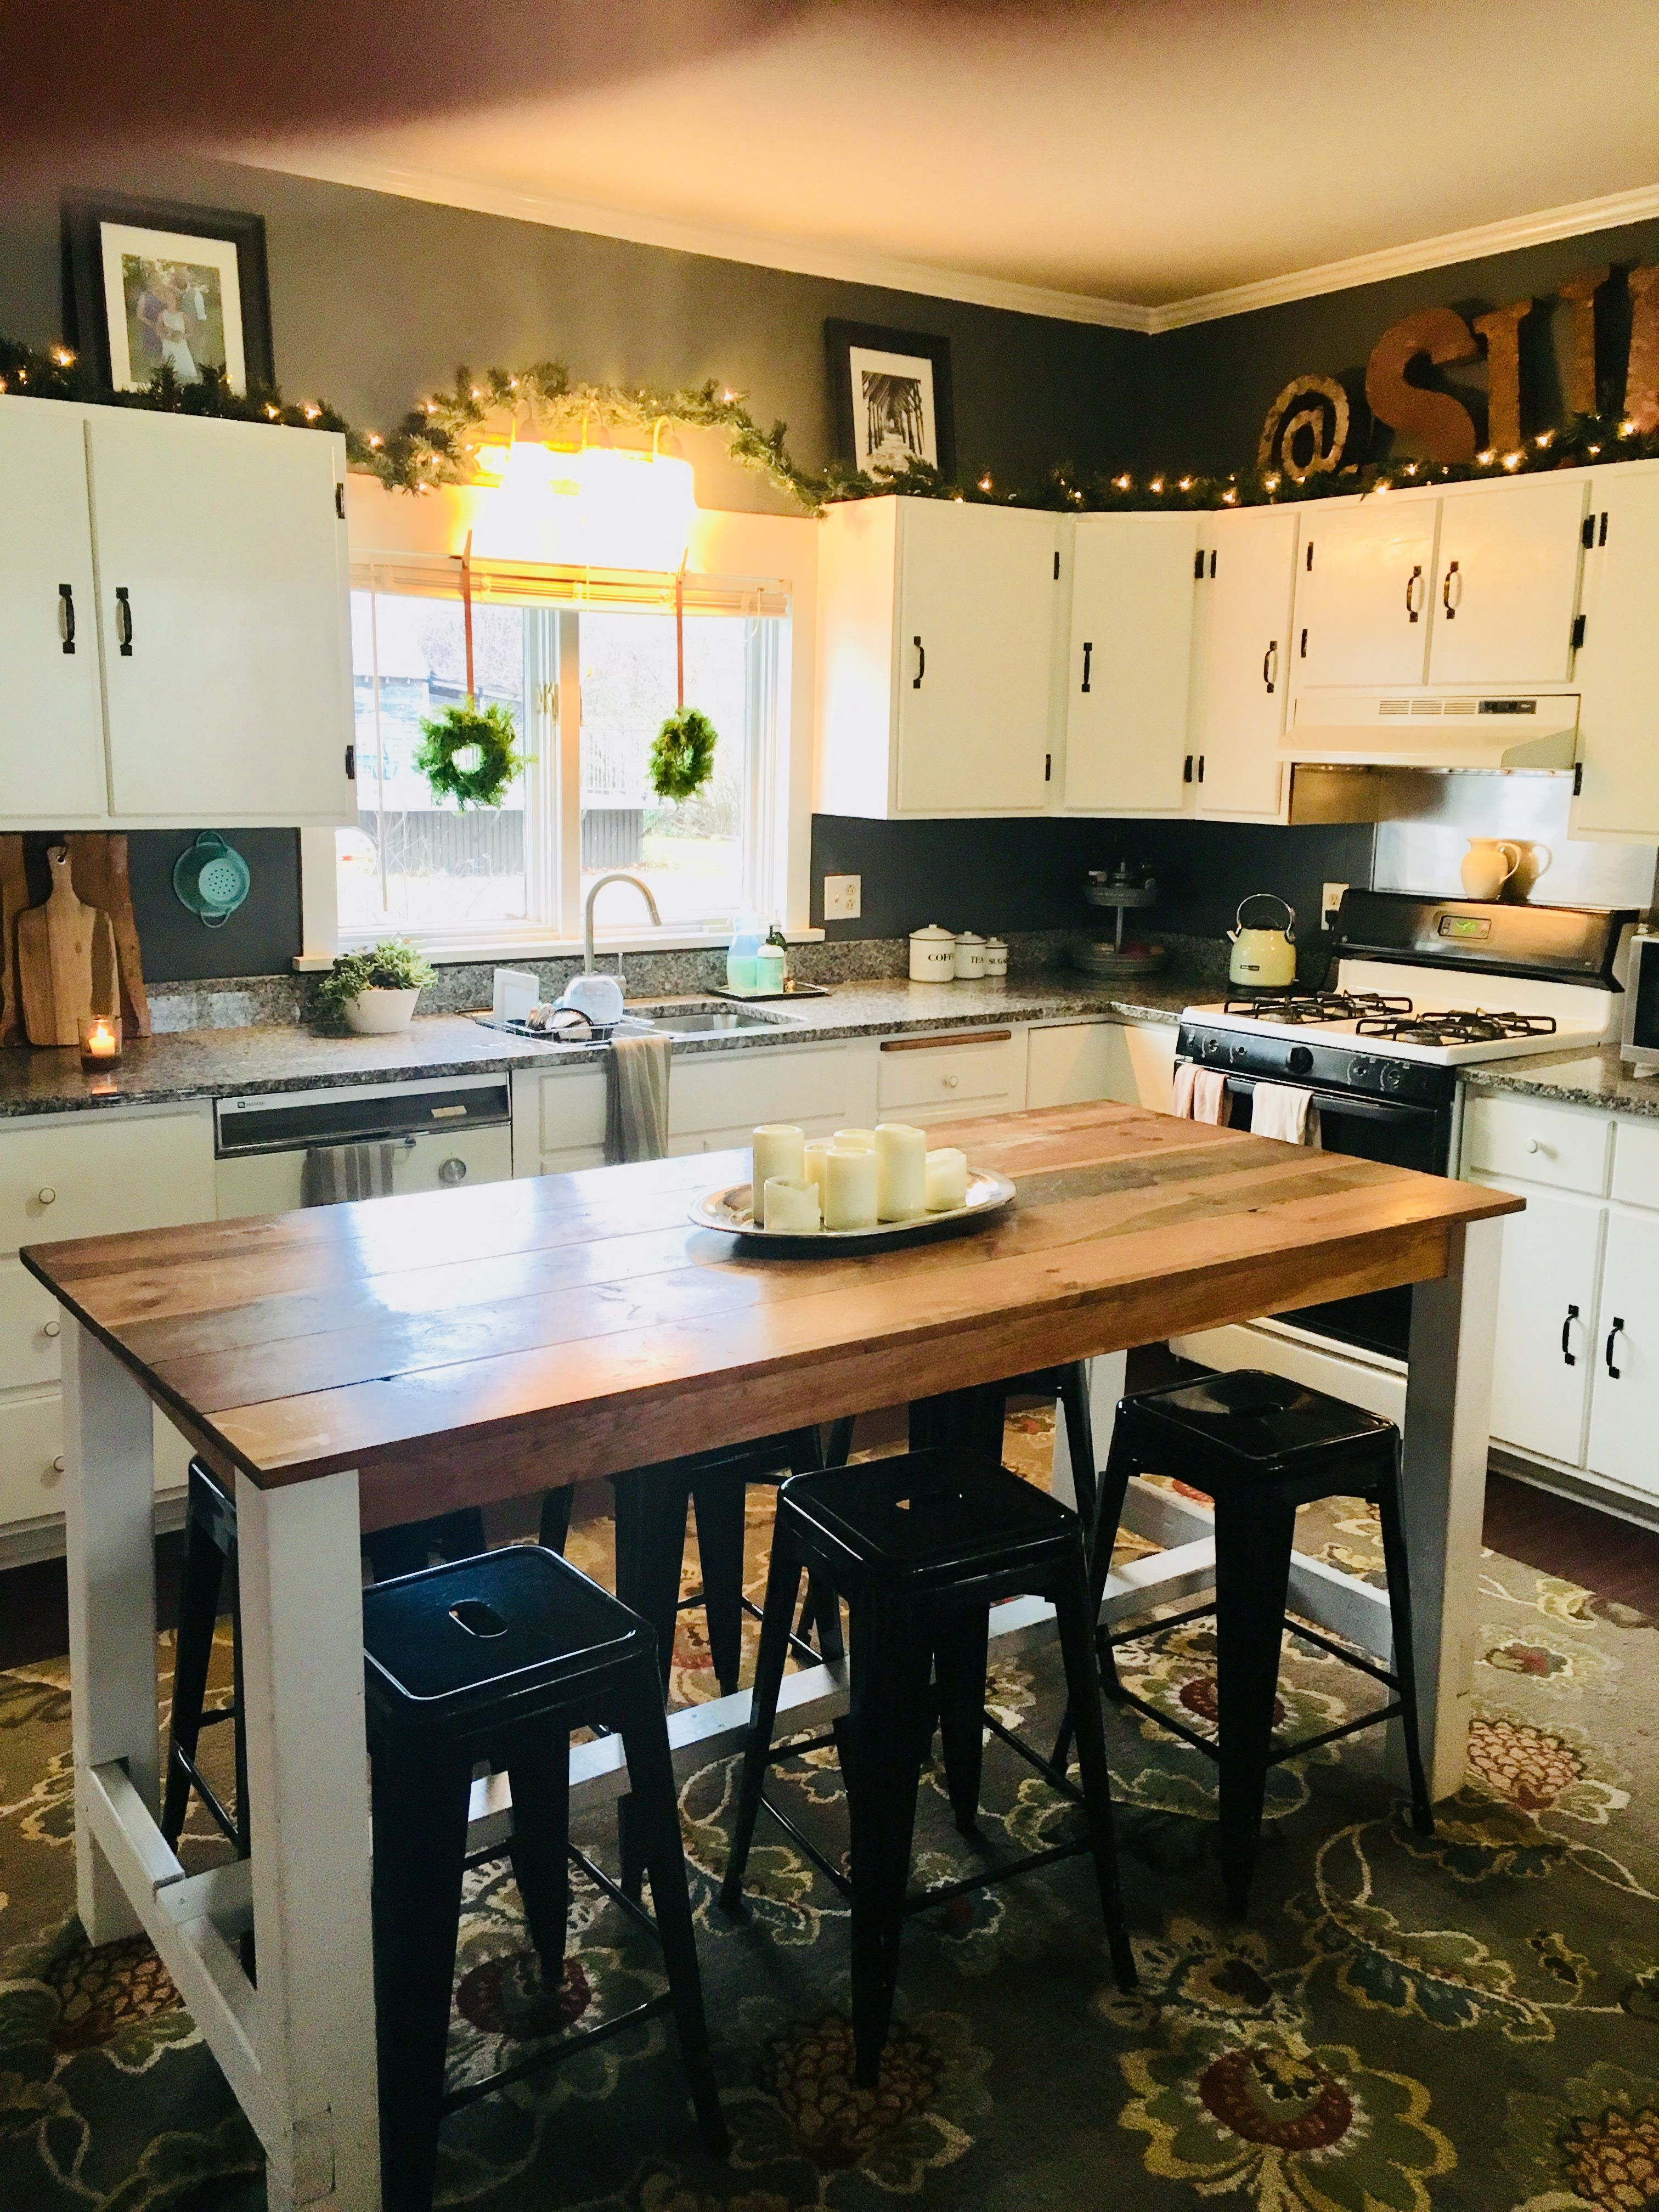 Diy farmhouse table and kitchen island in one with metal